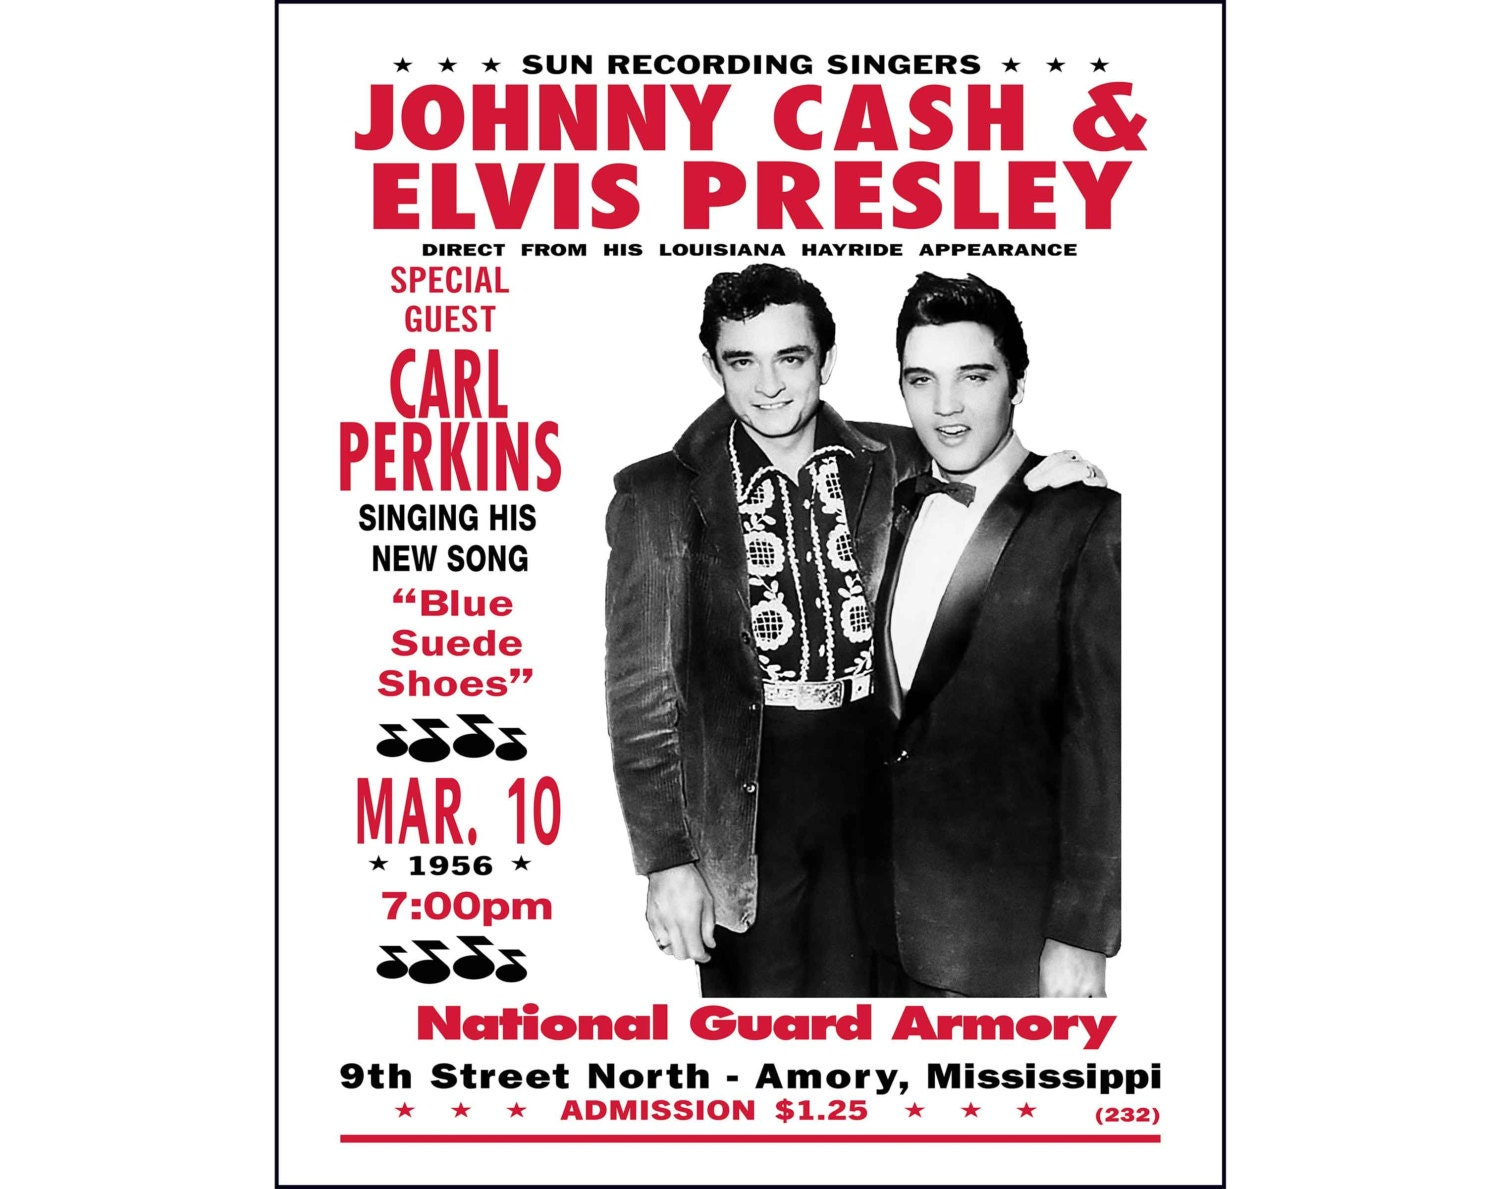 johnny cash elvis presley print photo poster cash and elvis. Black Bedroom Furniture Sets. Home Design Ideas